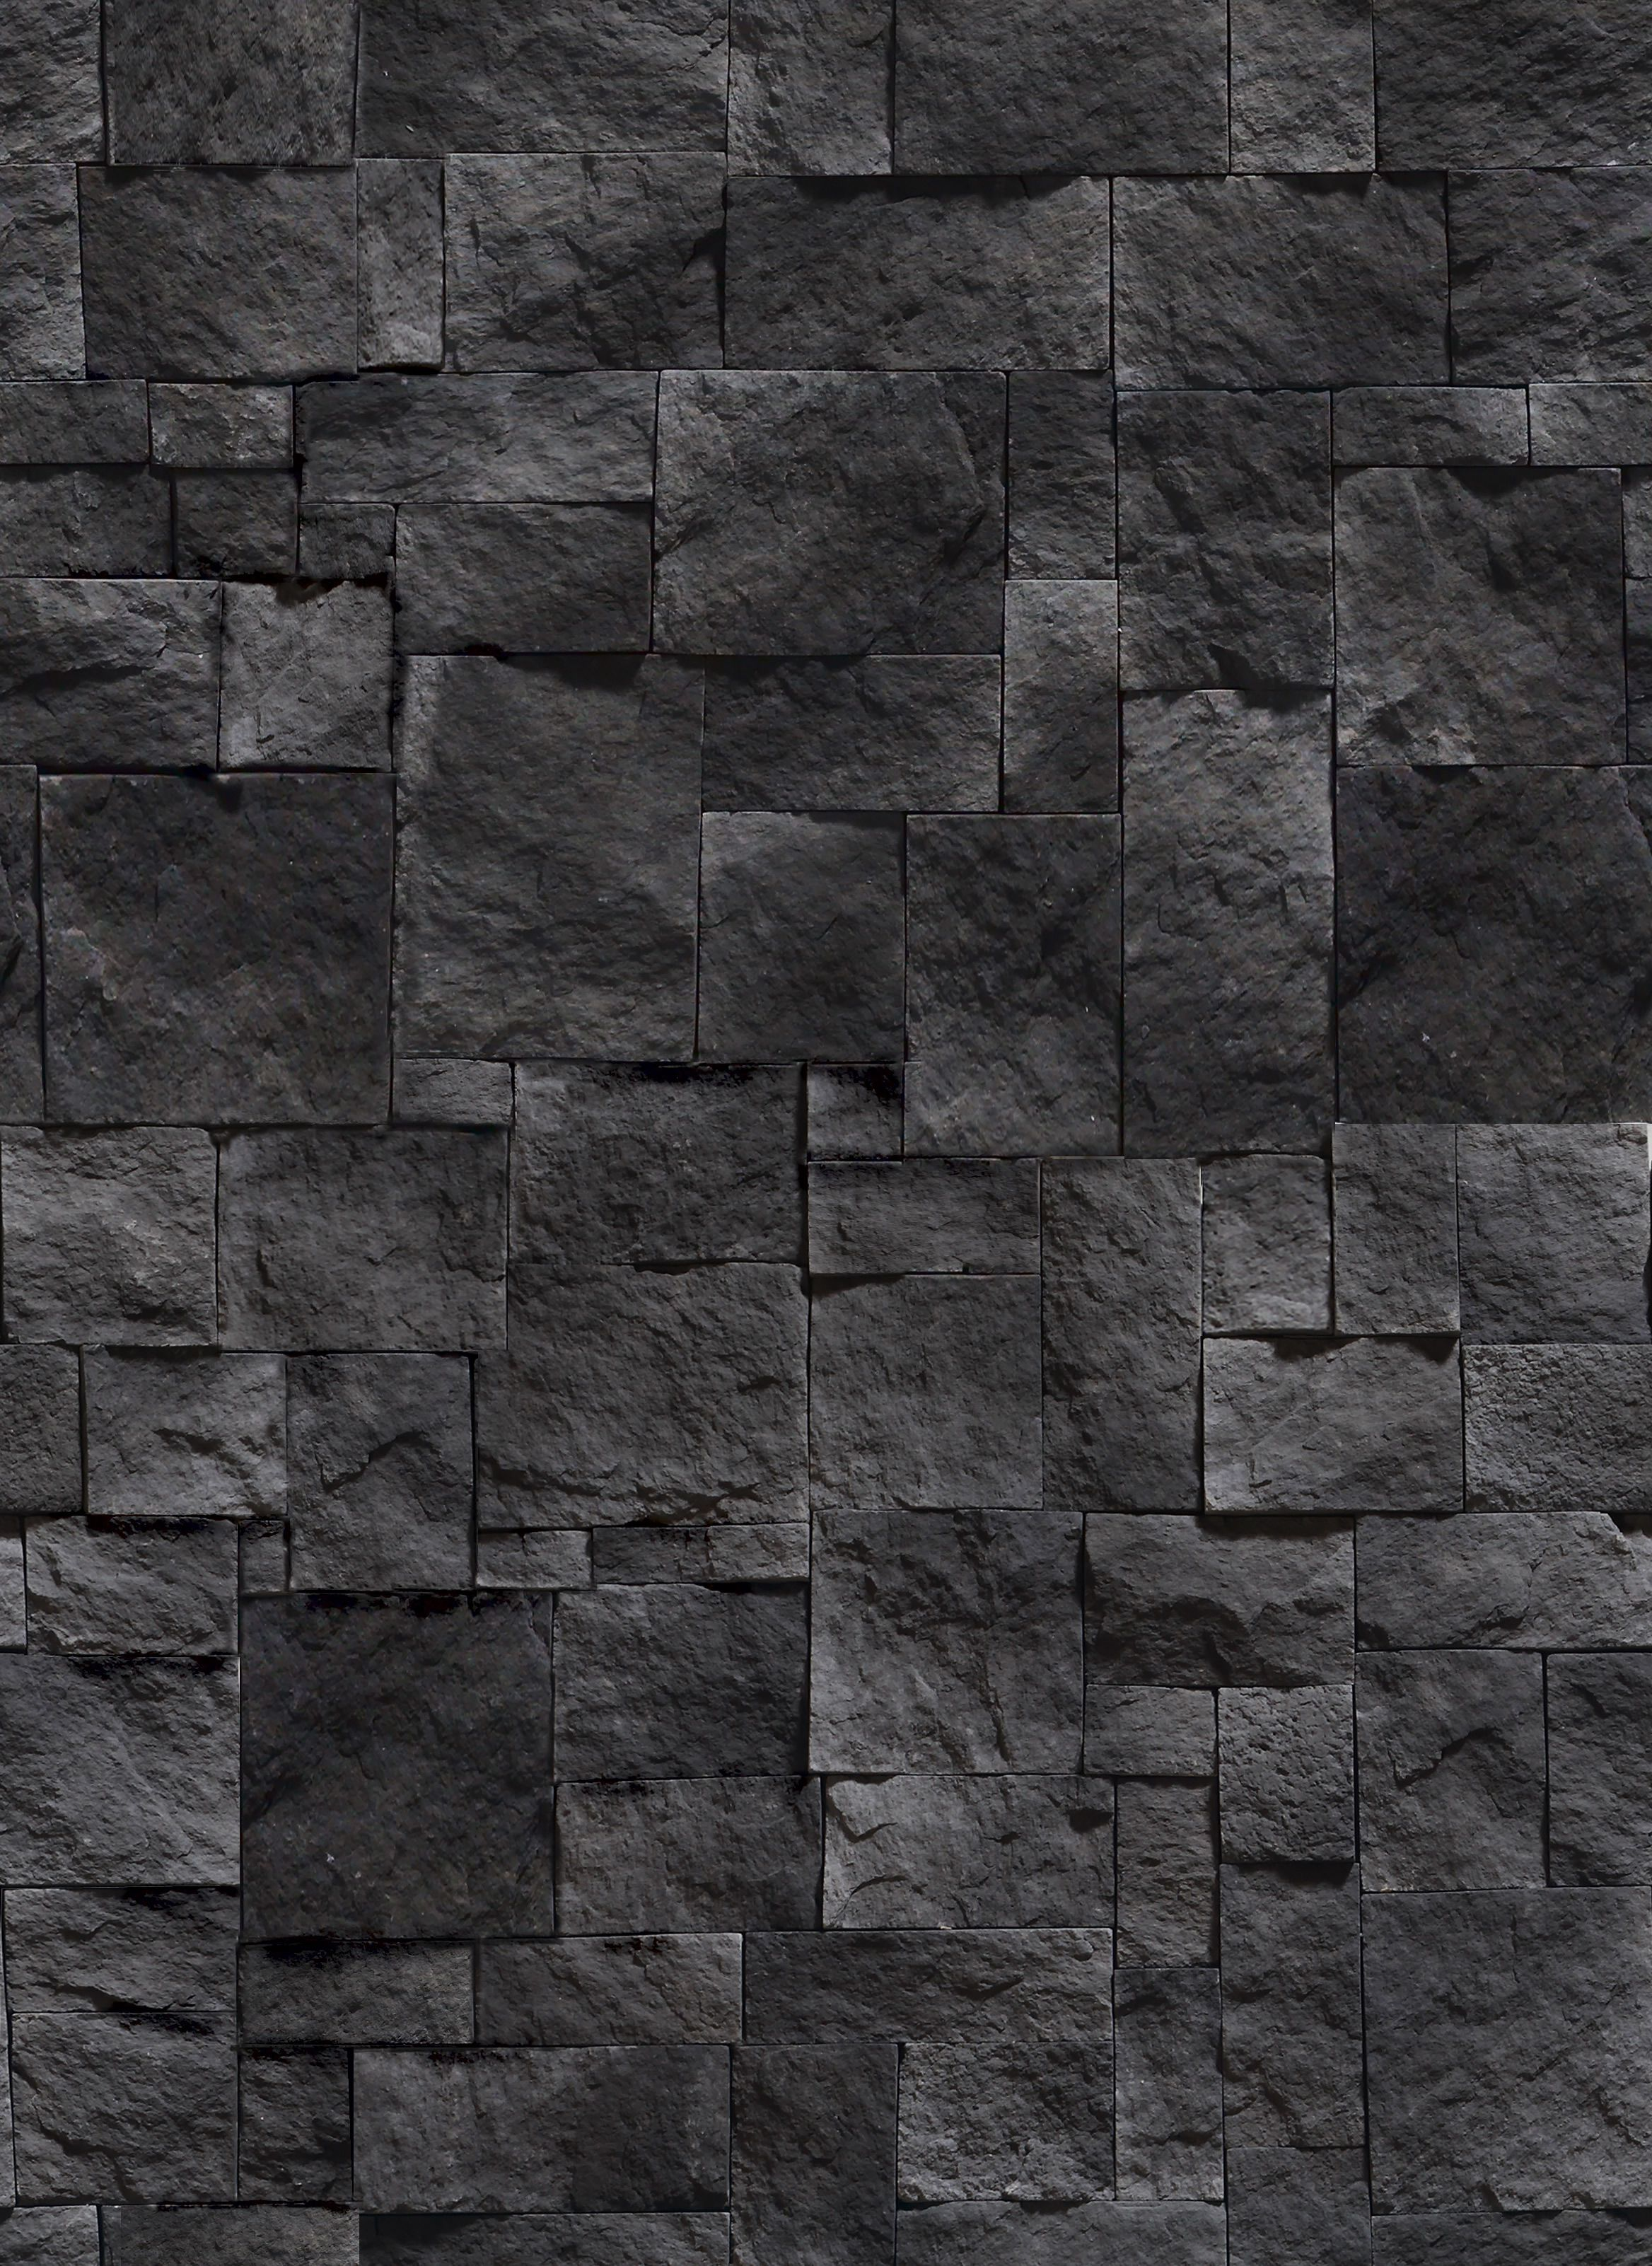 Black Stone Wall Texture Design Inspiration 29211 Floor Ideas